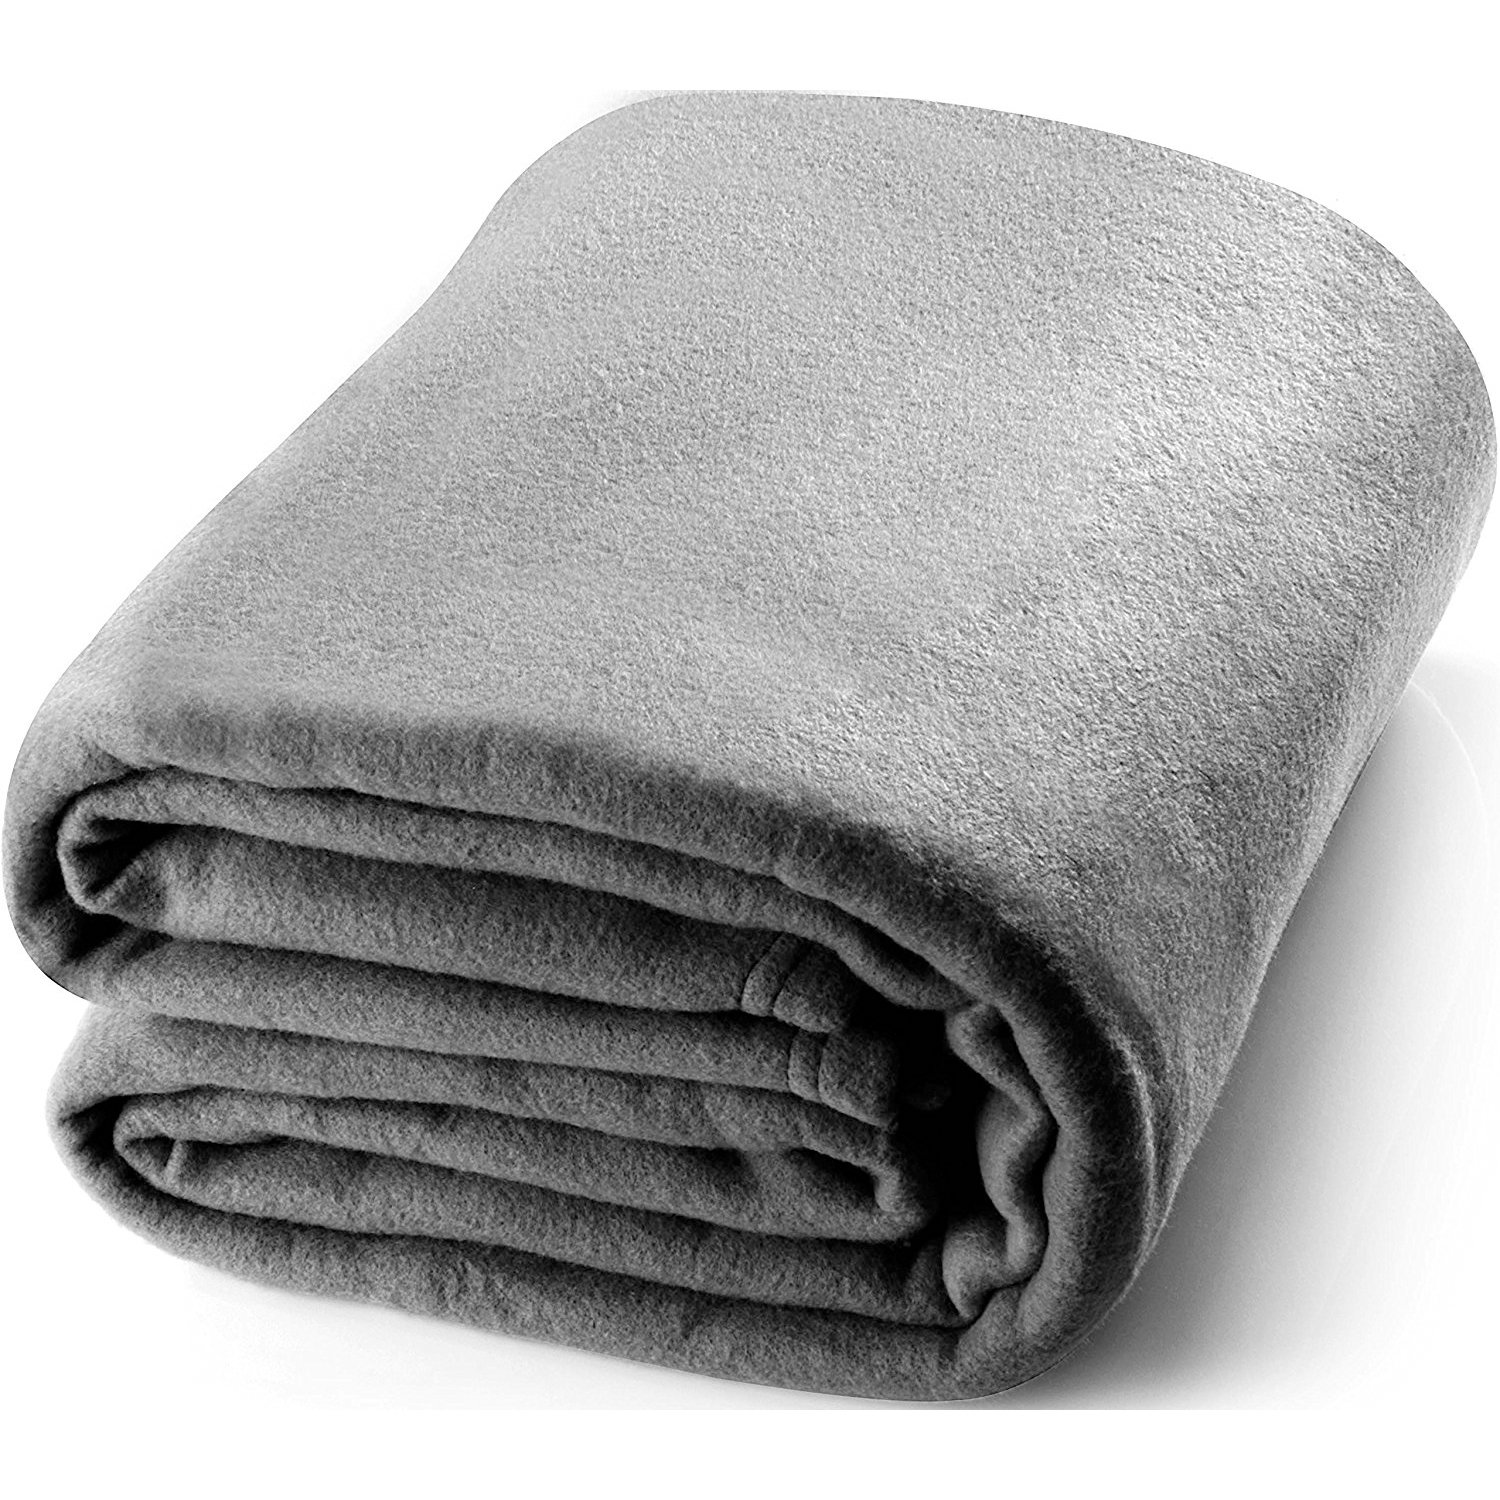 Fleece Thermal Blanket Grey - Extra Soft Brush Fabric, Super Warm Bed Blanket